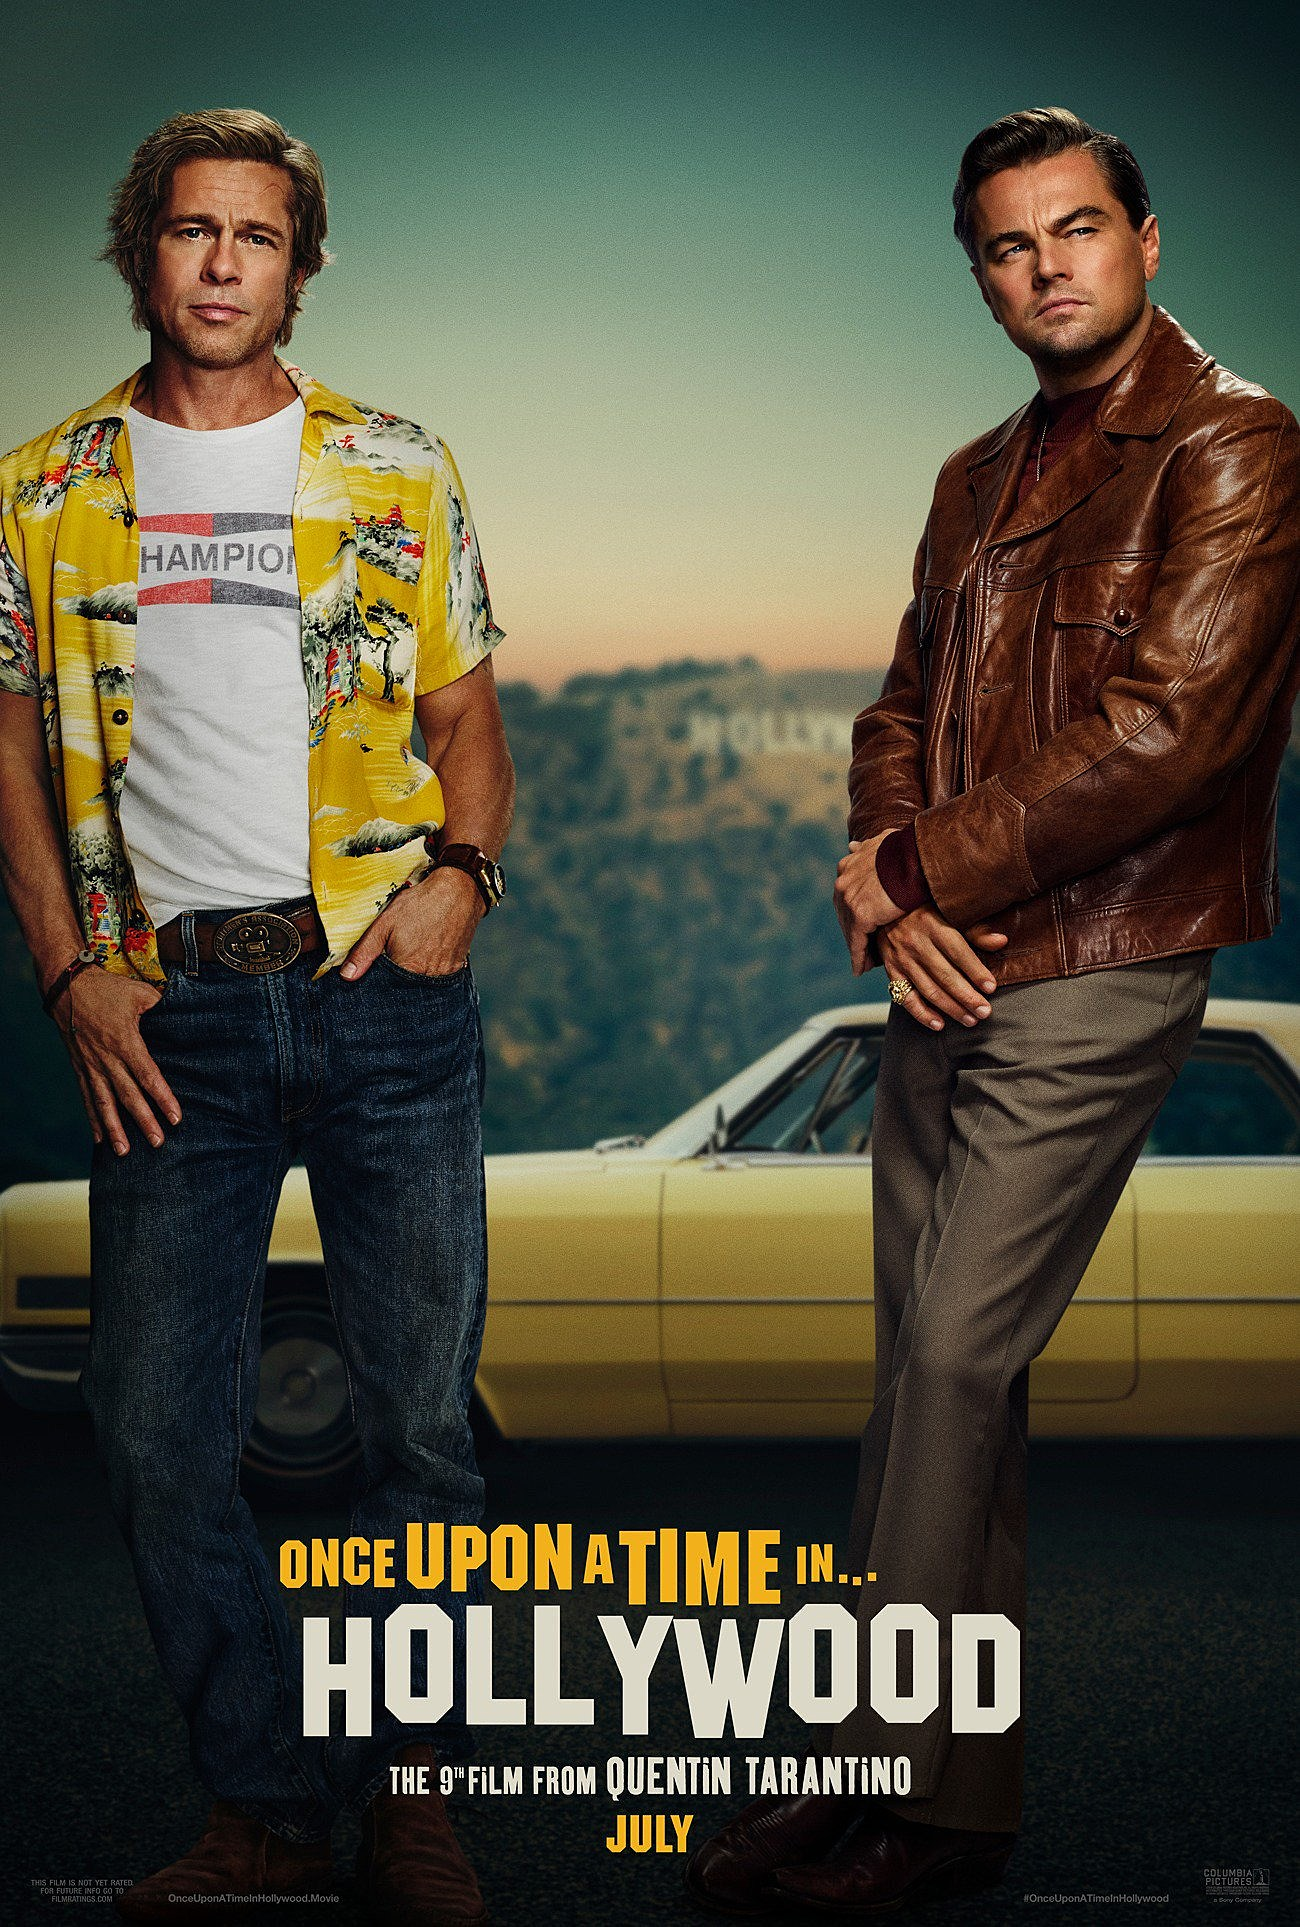 First 'Once Upon a Time in Hollywood' Poster Unveiled